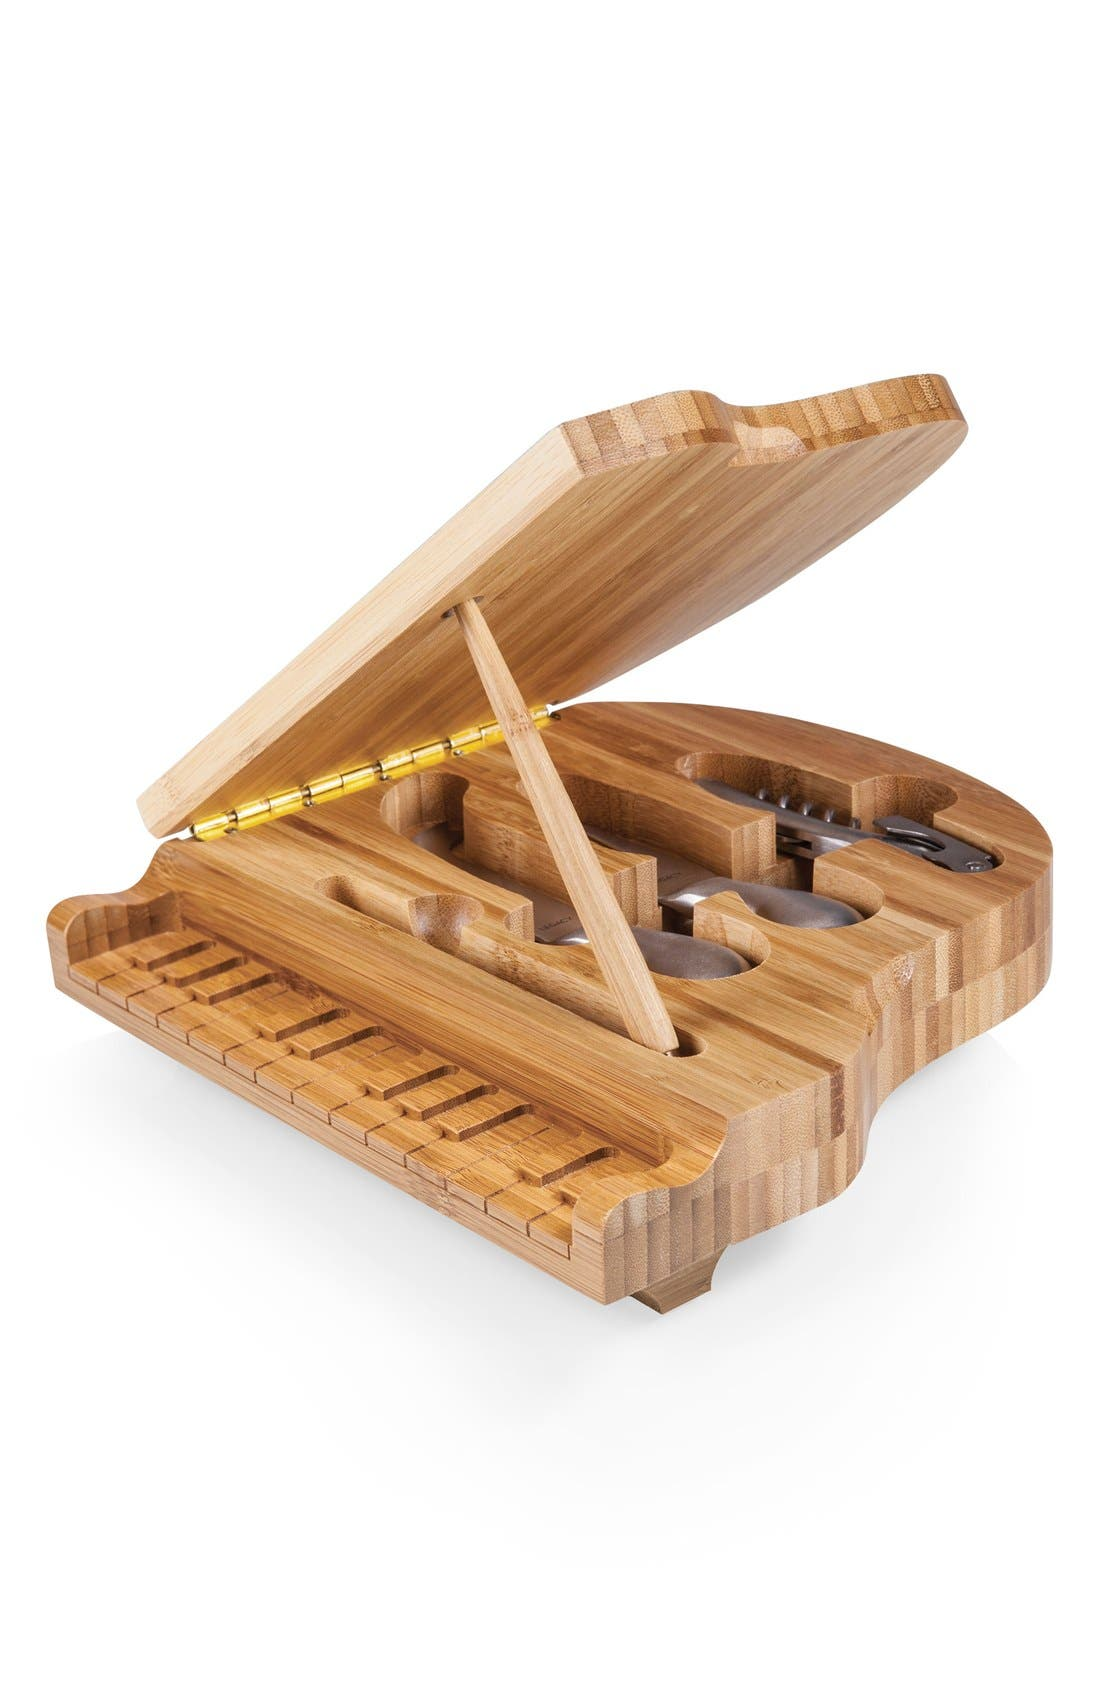 Alternate Image 1 Selected - Picnic Time 'Piano' Cheese Board Set